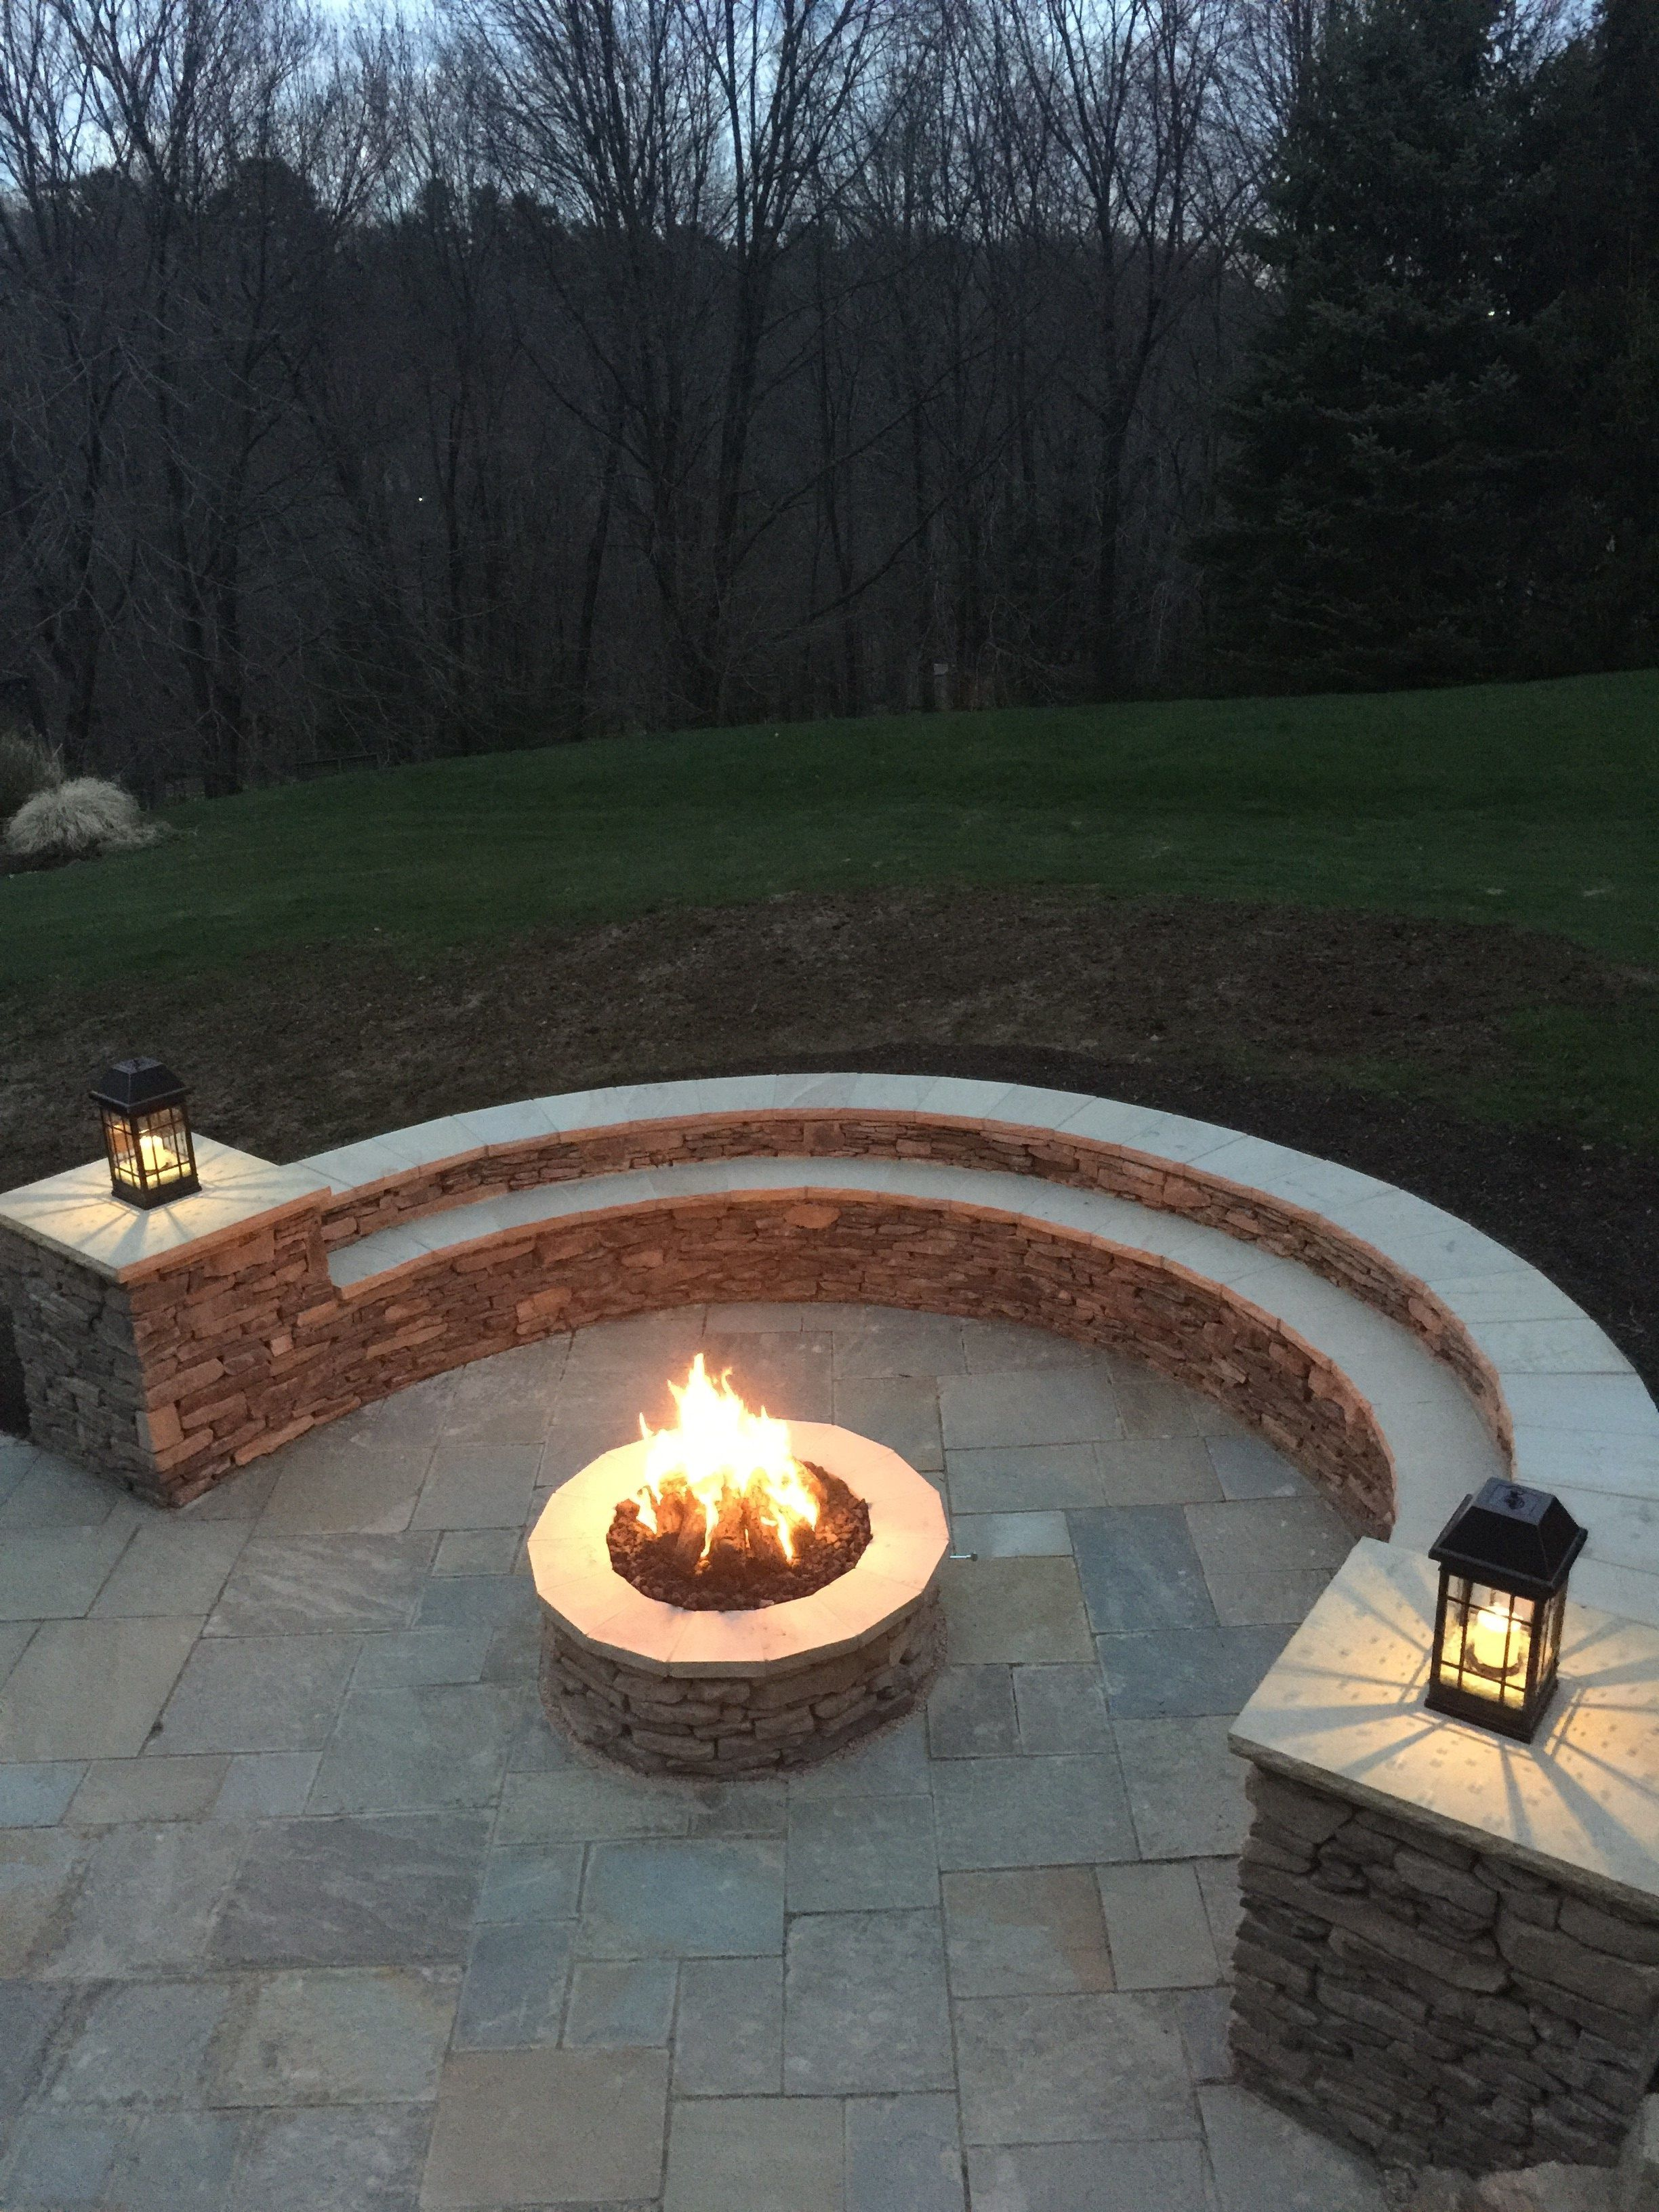 Pa Mountain Stone Veneered Seating Retaining Wall With Pillars Sandstone Caps Pa Mountai Landscaping Retaining Walls Fire Pit Seating Area Brick Fire Pit